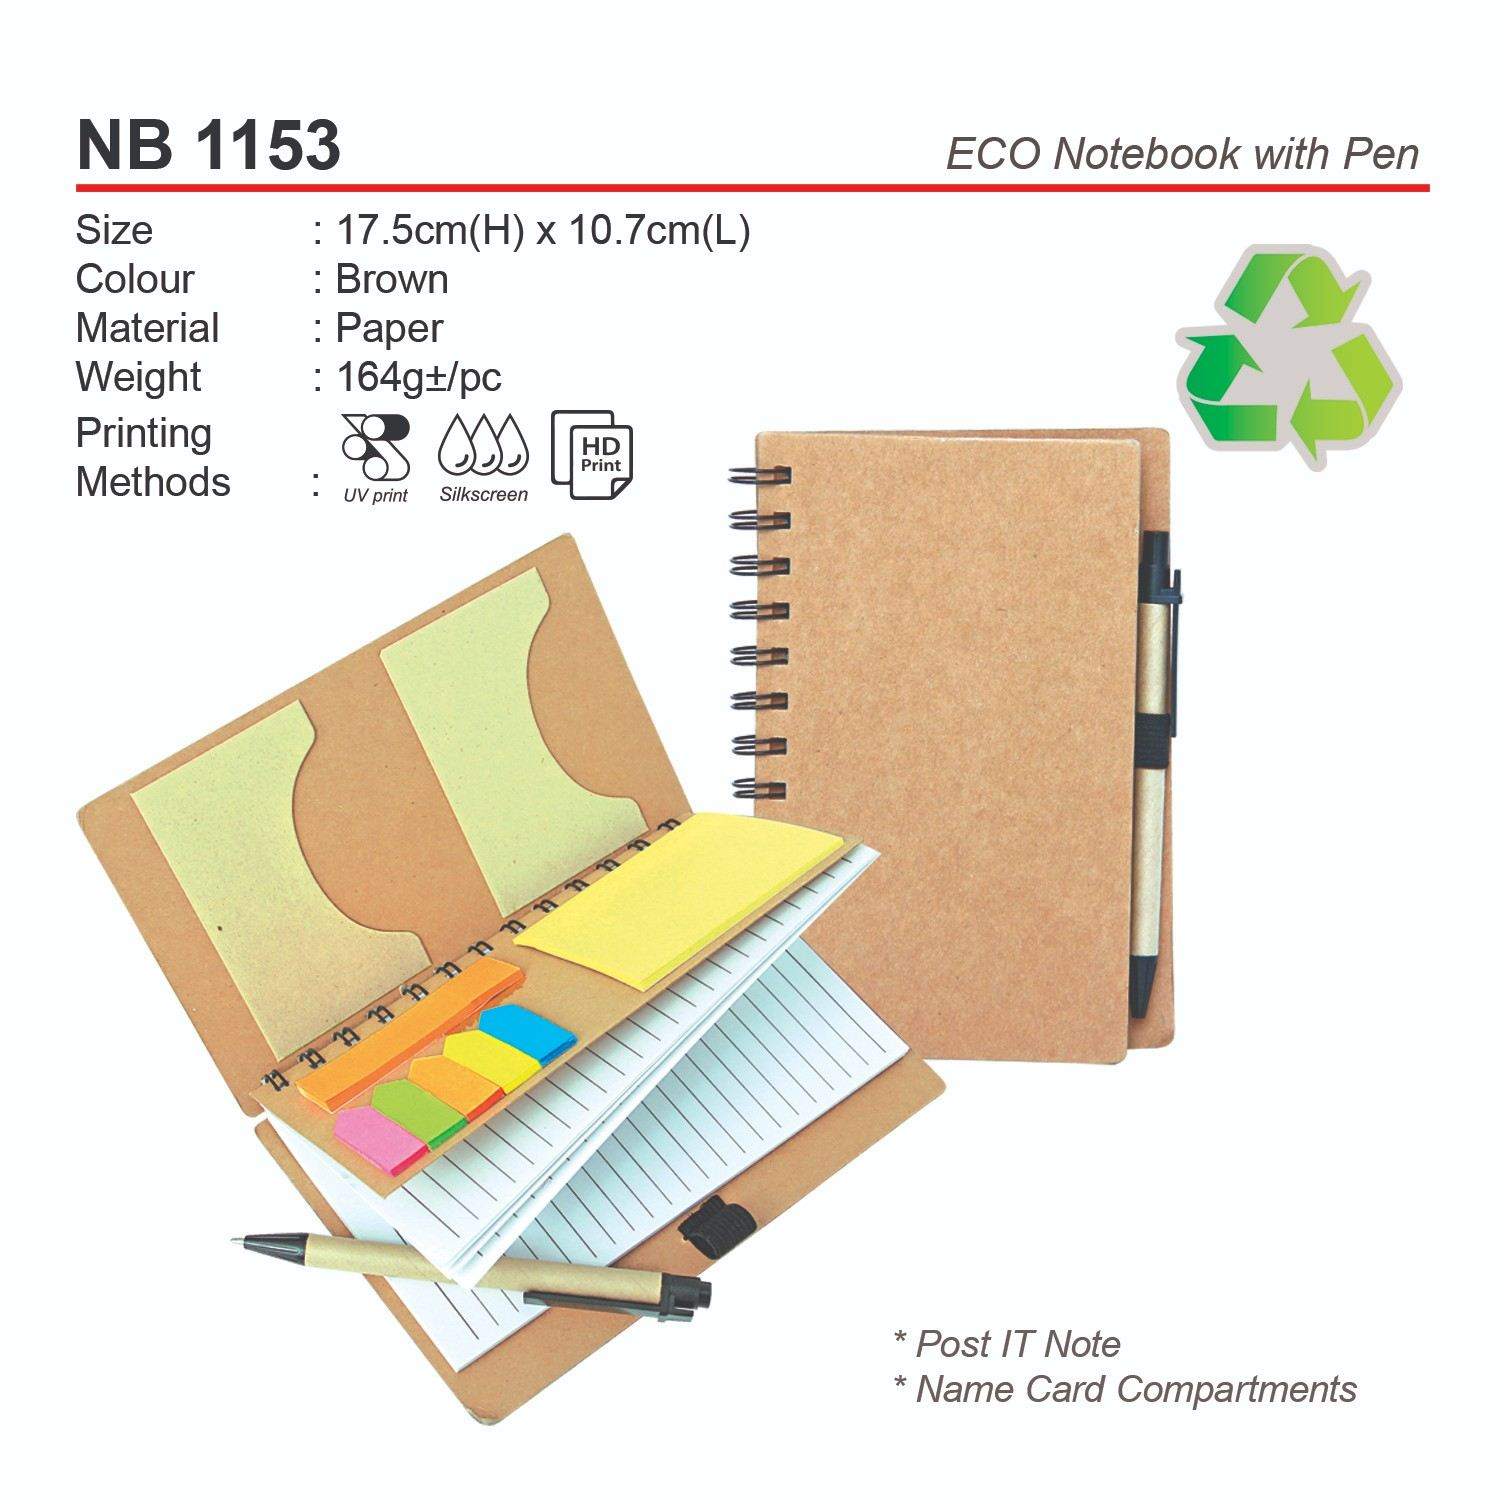 NB 1153 ECO Notebook with Pen